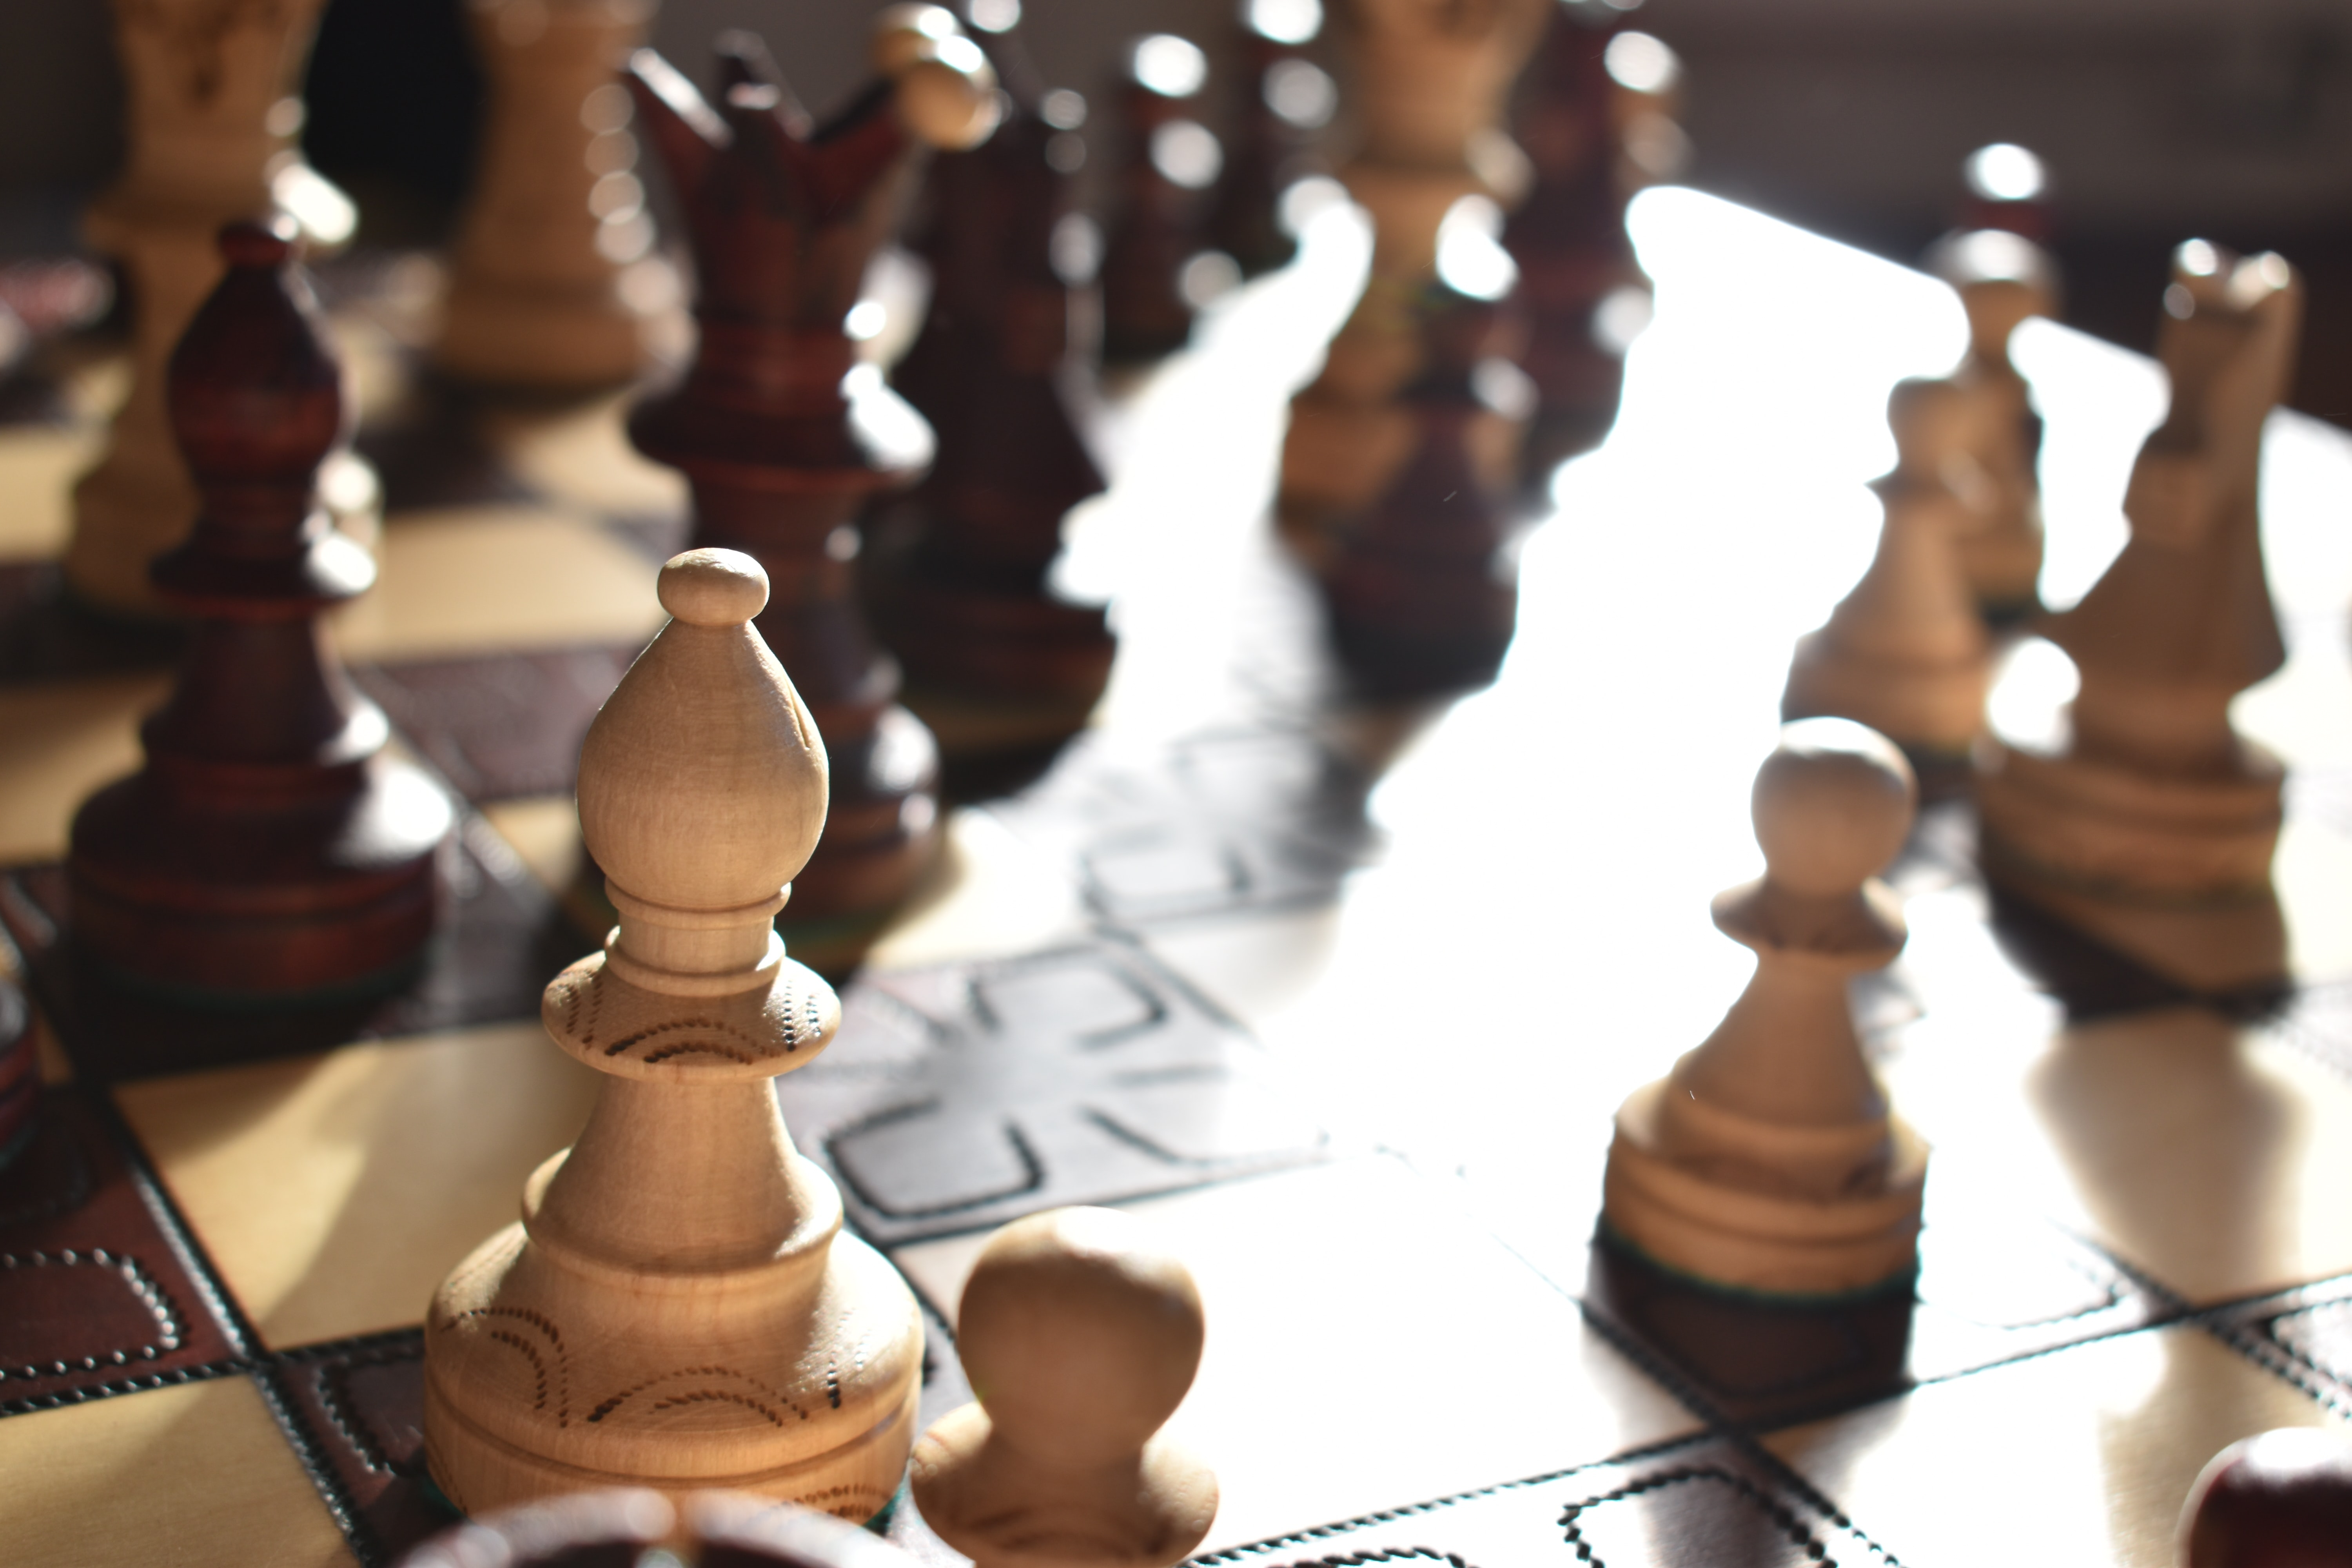 closeup photography of chessboard game set